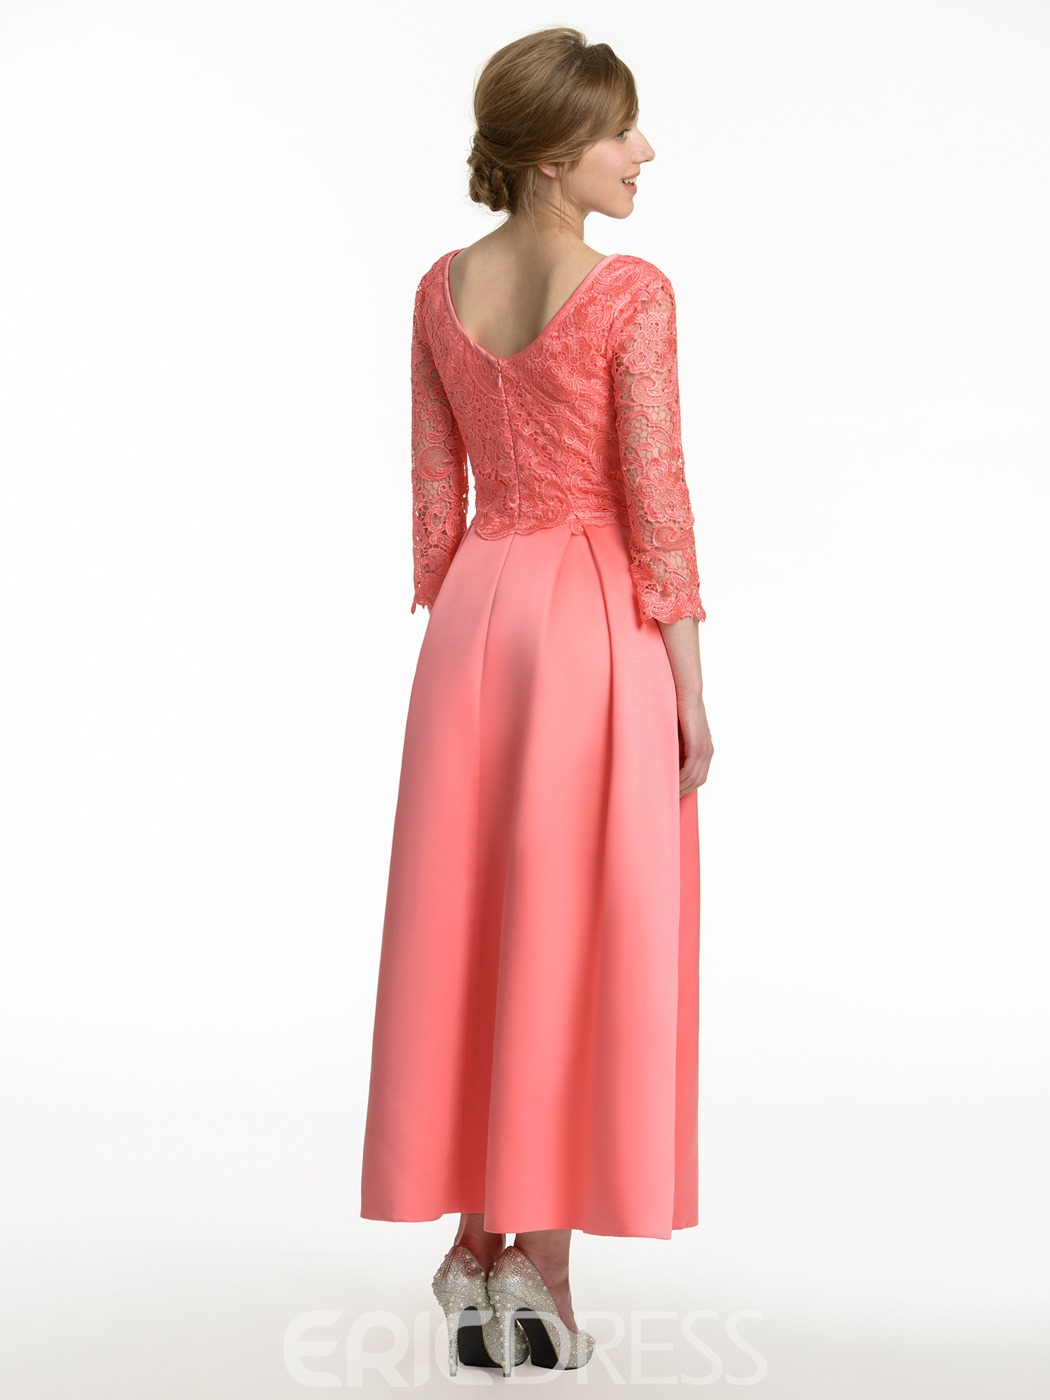 Ericdress Beautiful 3/4 Length Sleeves Lace A Line Bridesmaid Dress ...